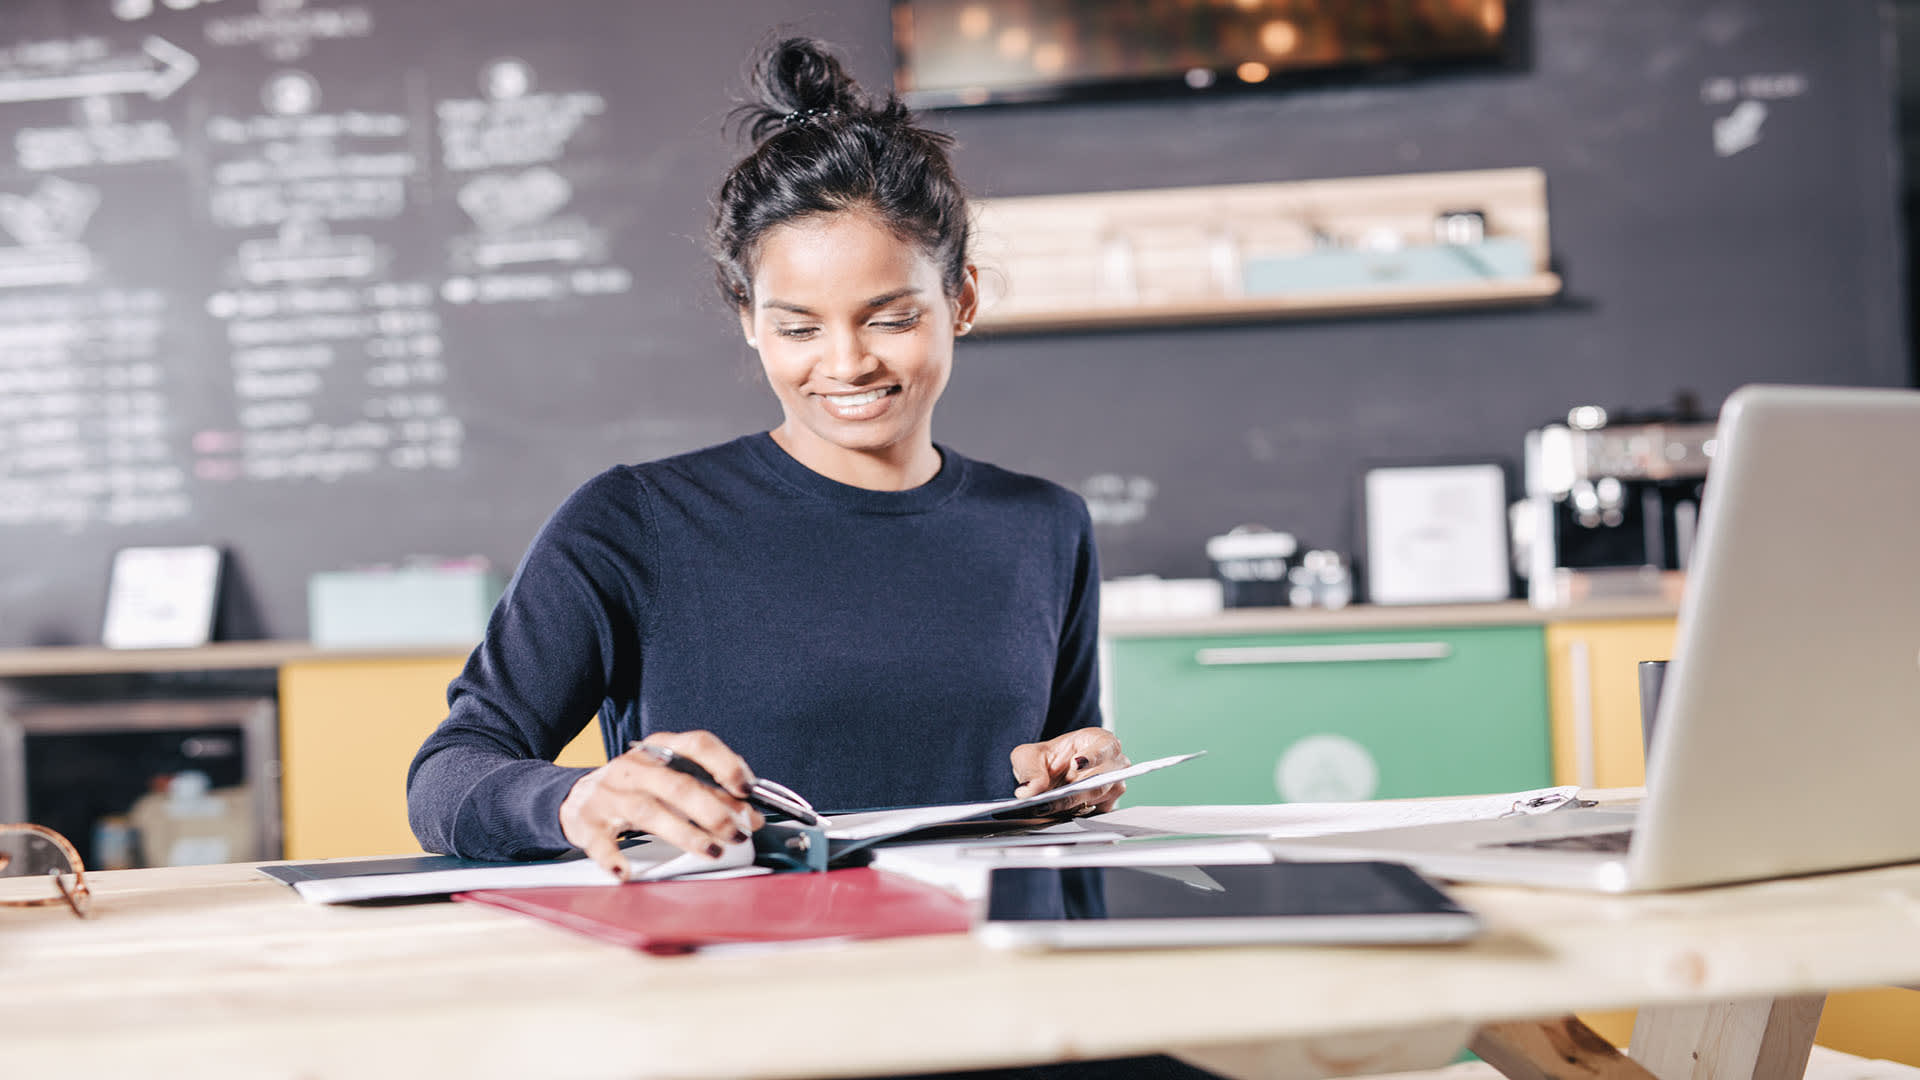 Why a Small-Business Revolving Line of Credit May Work for Your Business